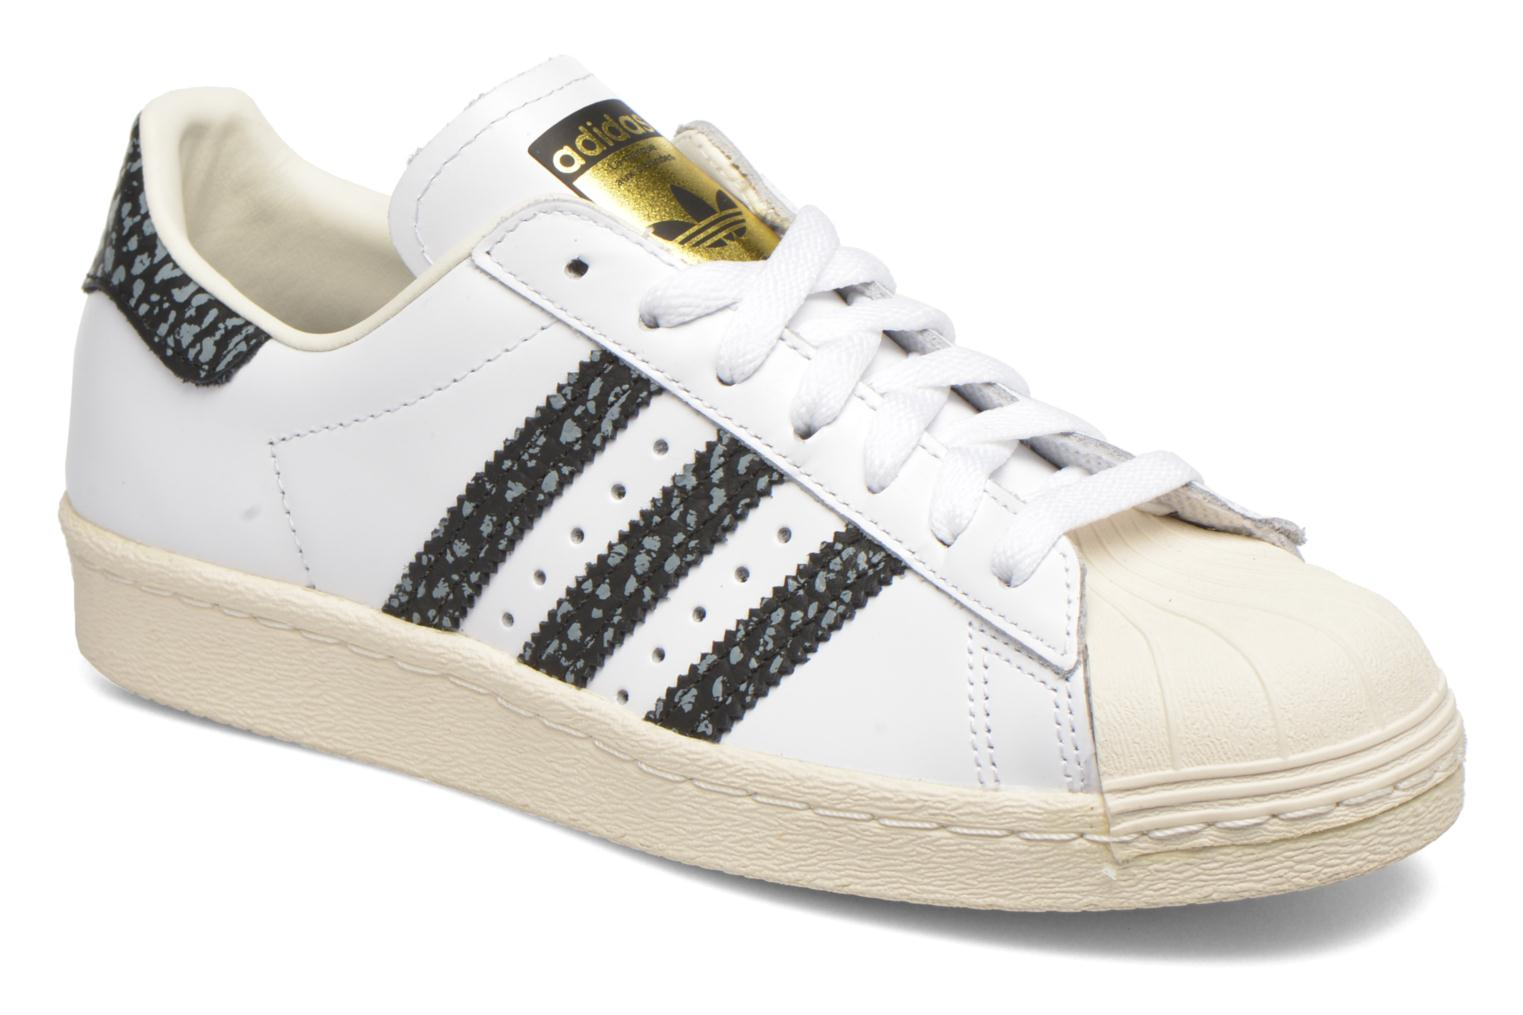 Superstar 80S W Ftwbla/Vervap/Blacas